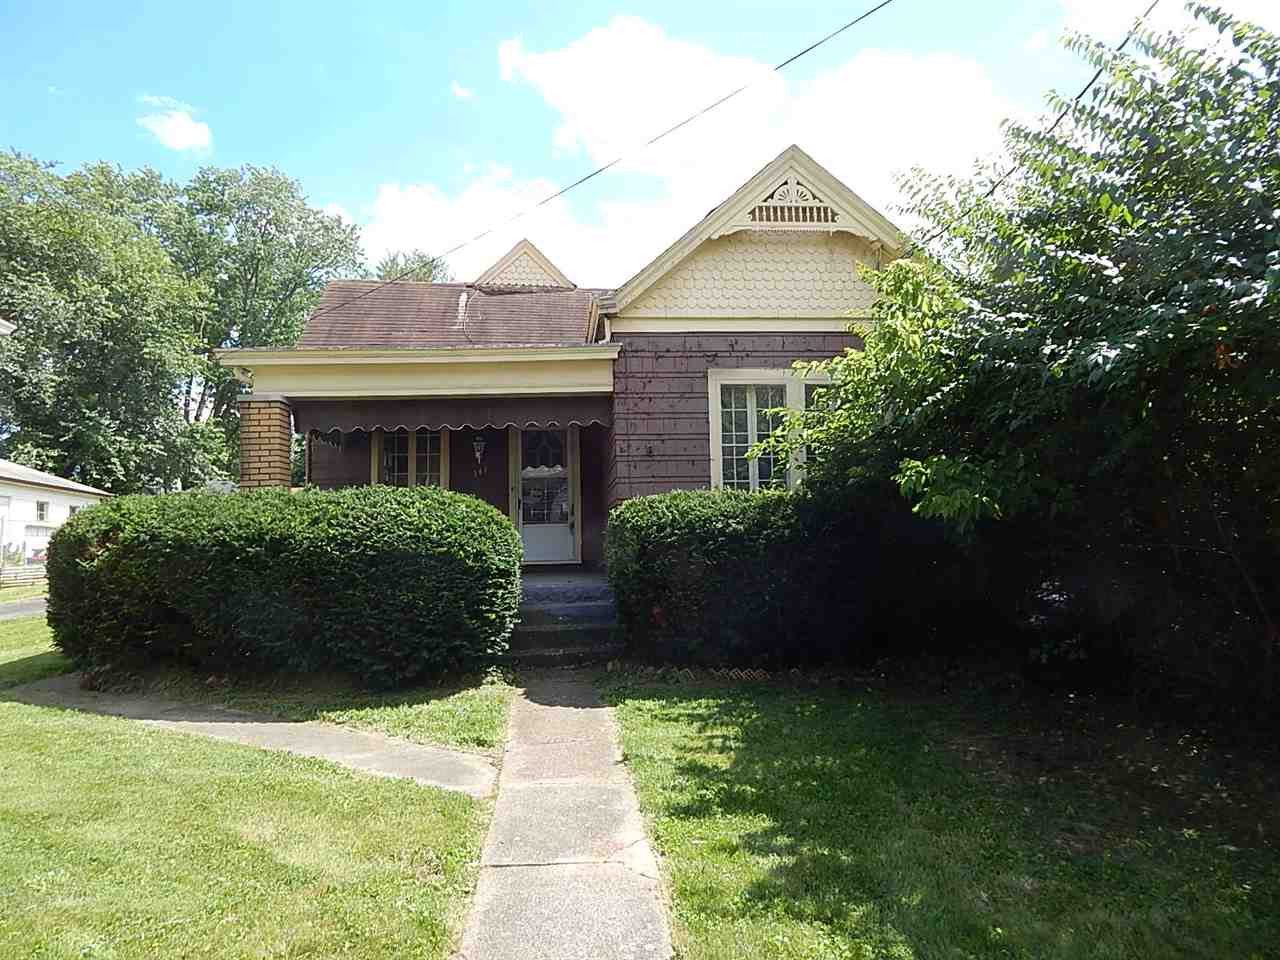 Photo 1 for 141 E 41st St Covington, KY 41015